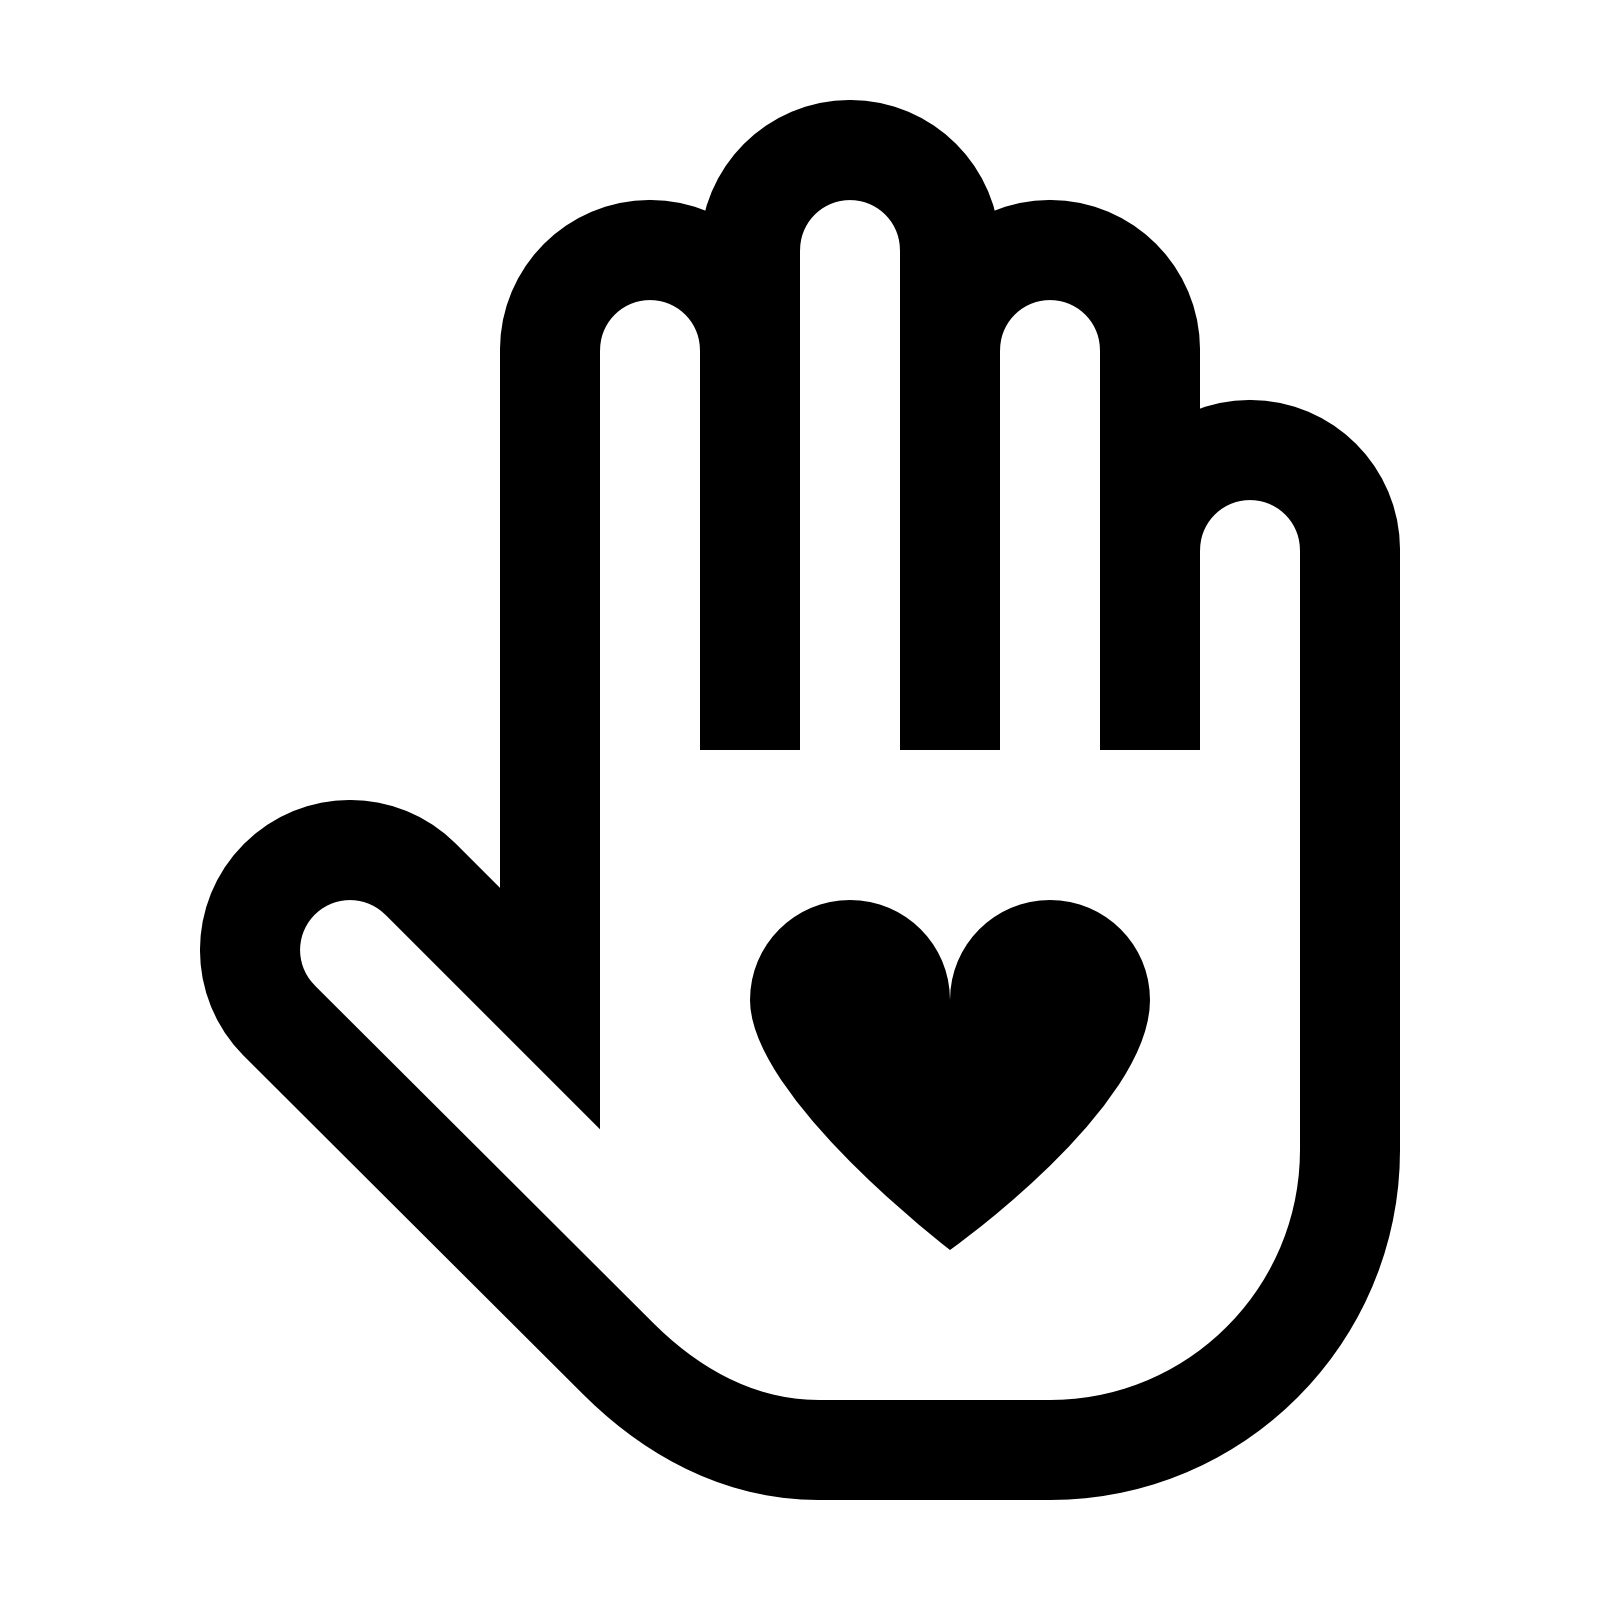 icon of a hand with a heart shape in the middle of it